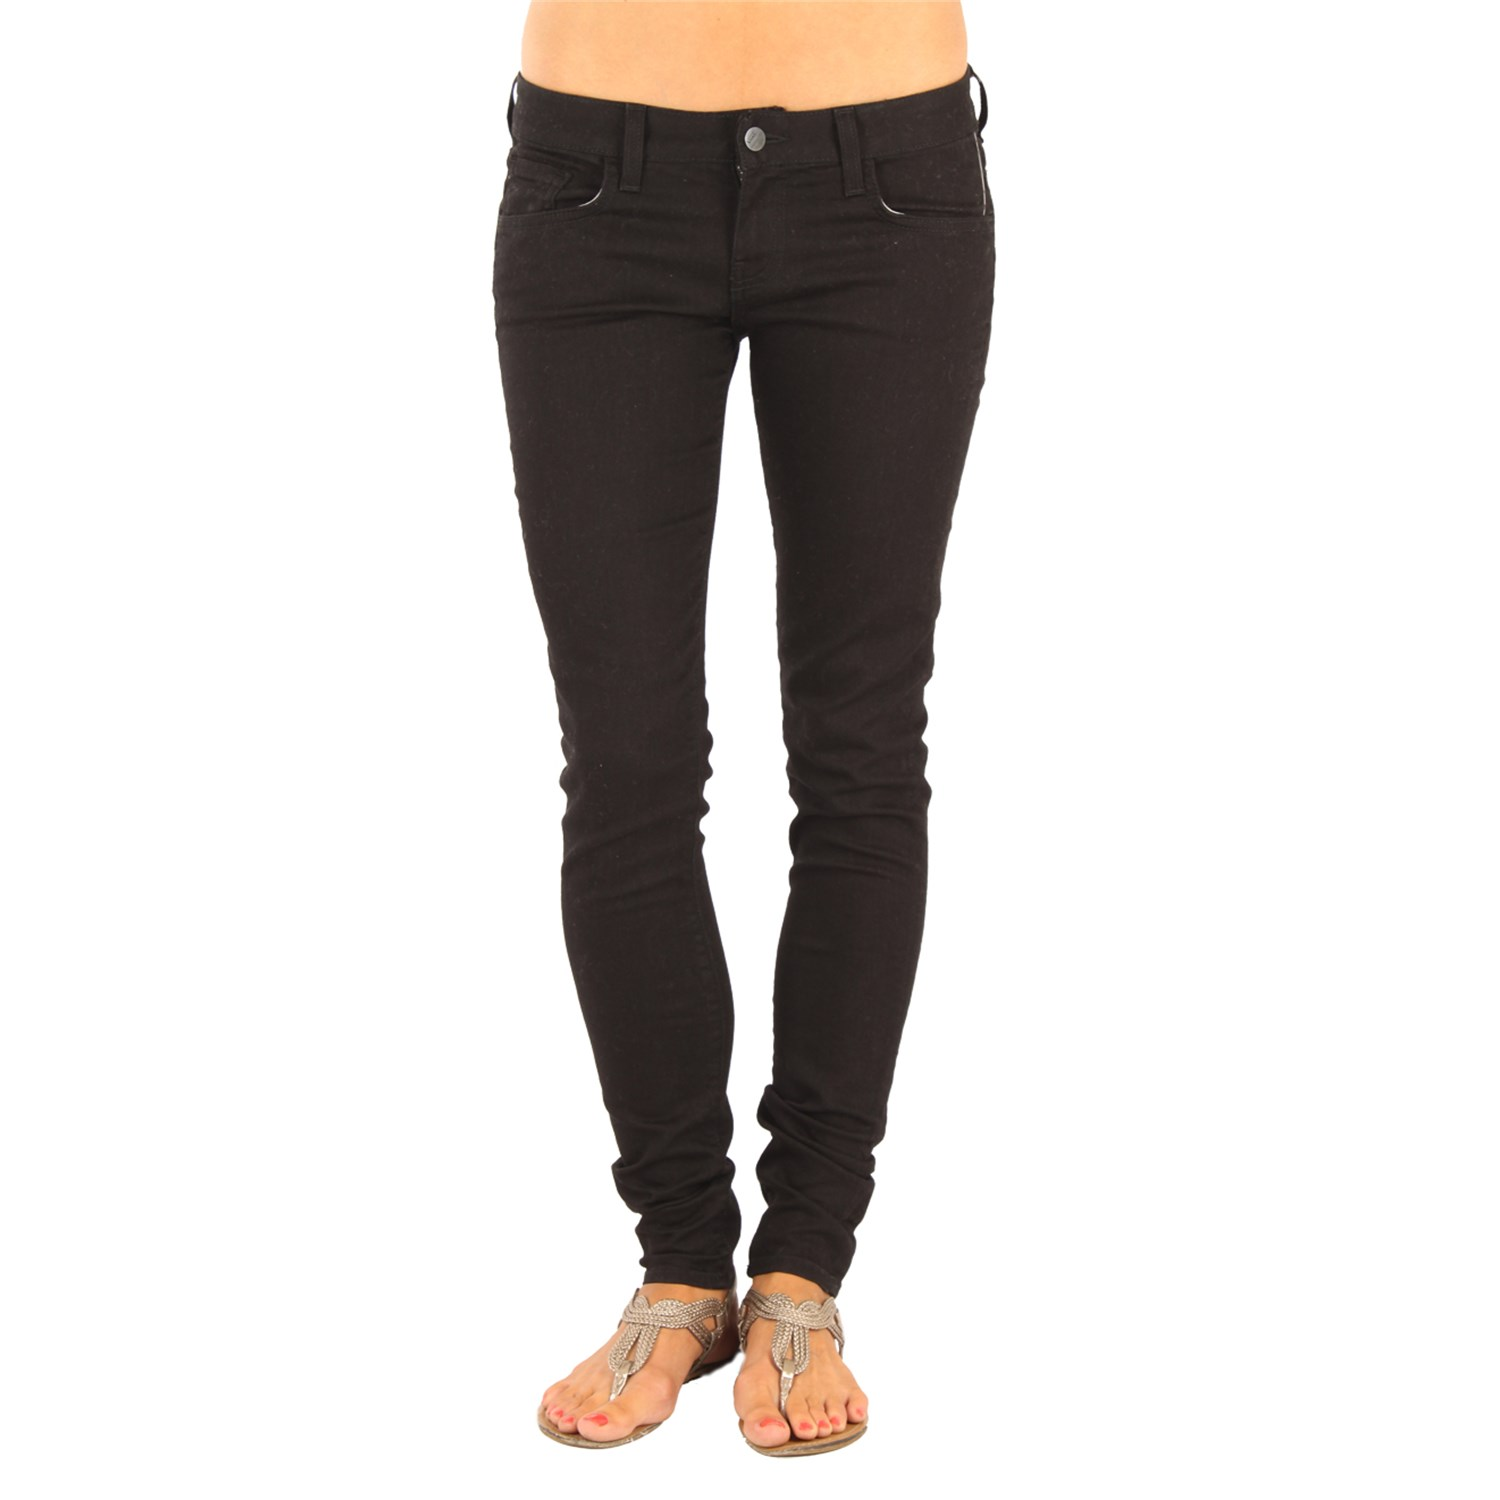 Brilliant Stretch Skinny Pants  Skinny Work Pants  THE LIMITED Best Pants